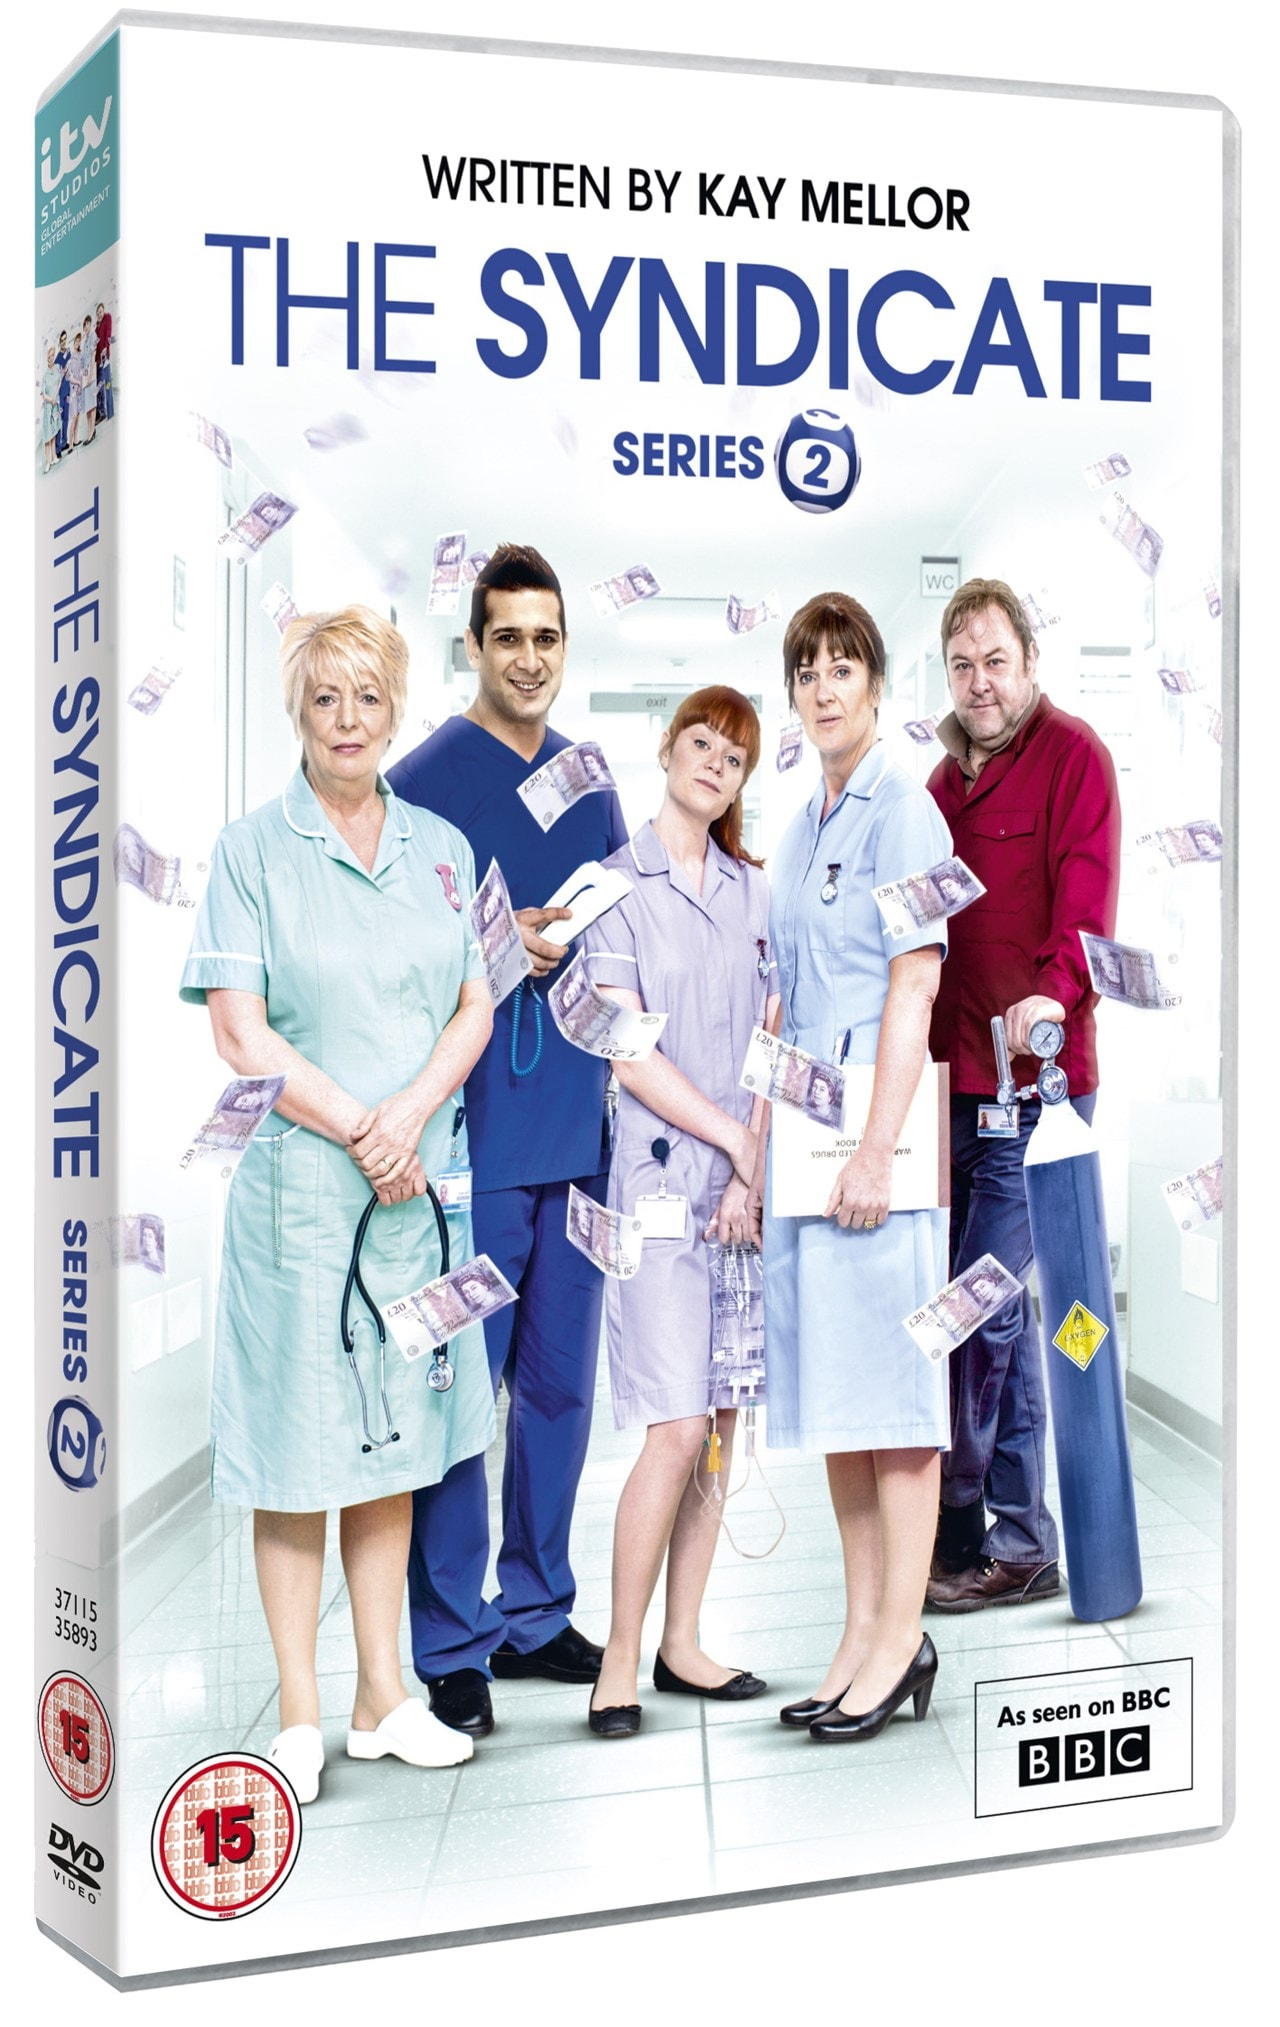 The Syndicate: Series 2 - 2